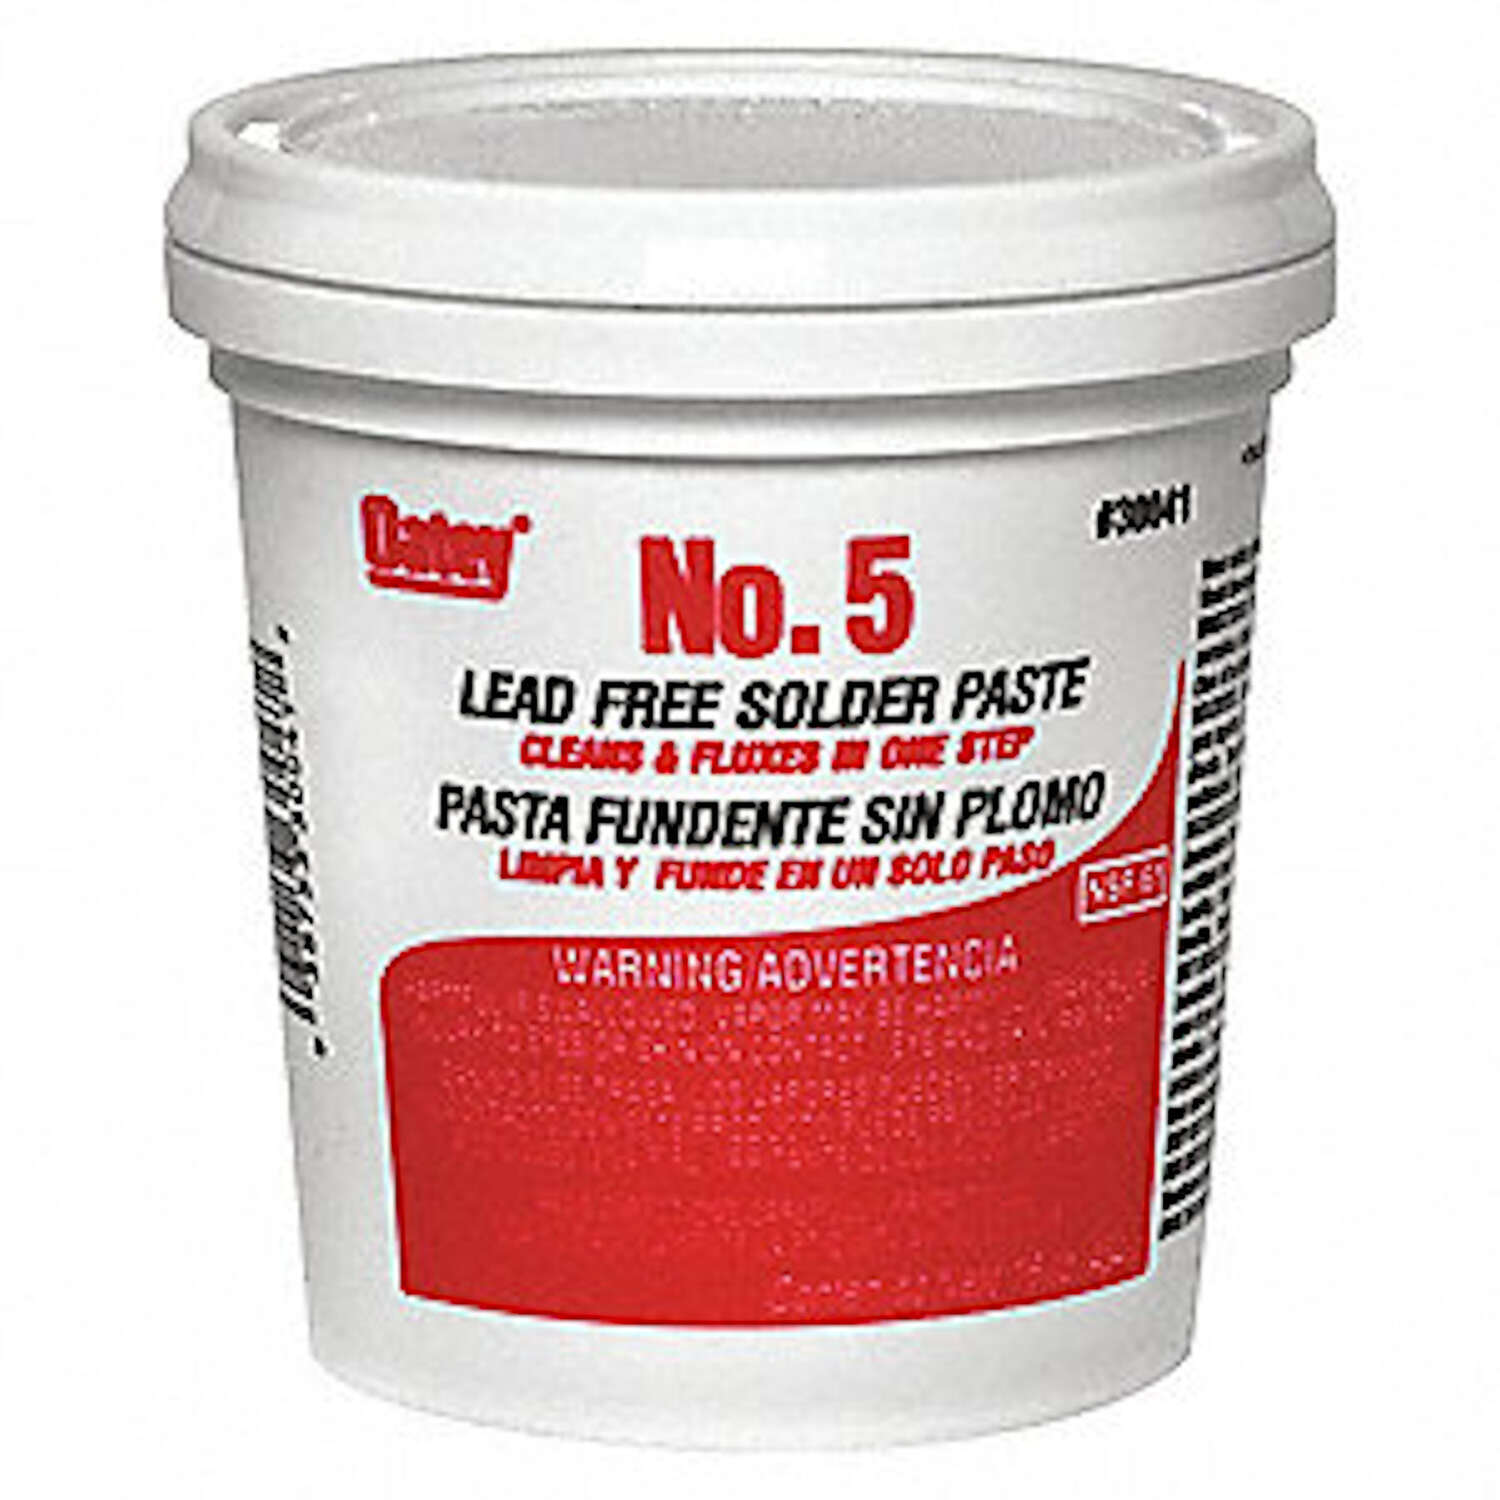 Oatey  16 oz. Lead-Free Paste Flux  1 pc. Petrolatum  NSF